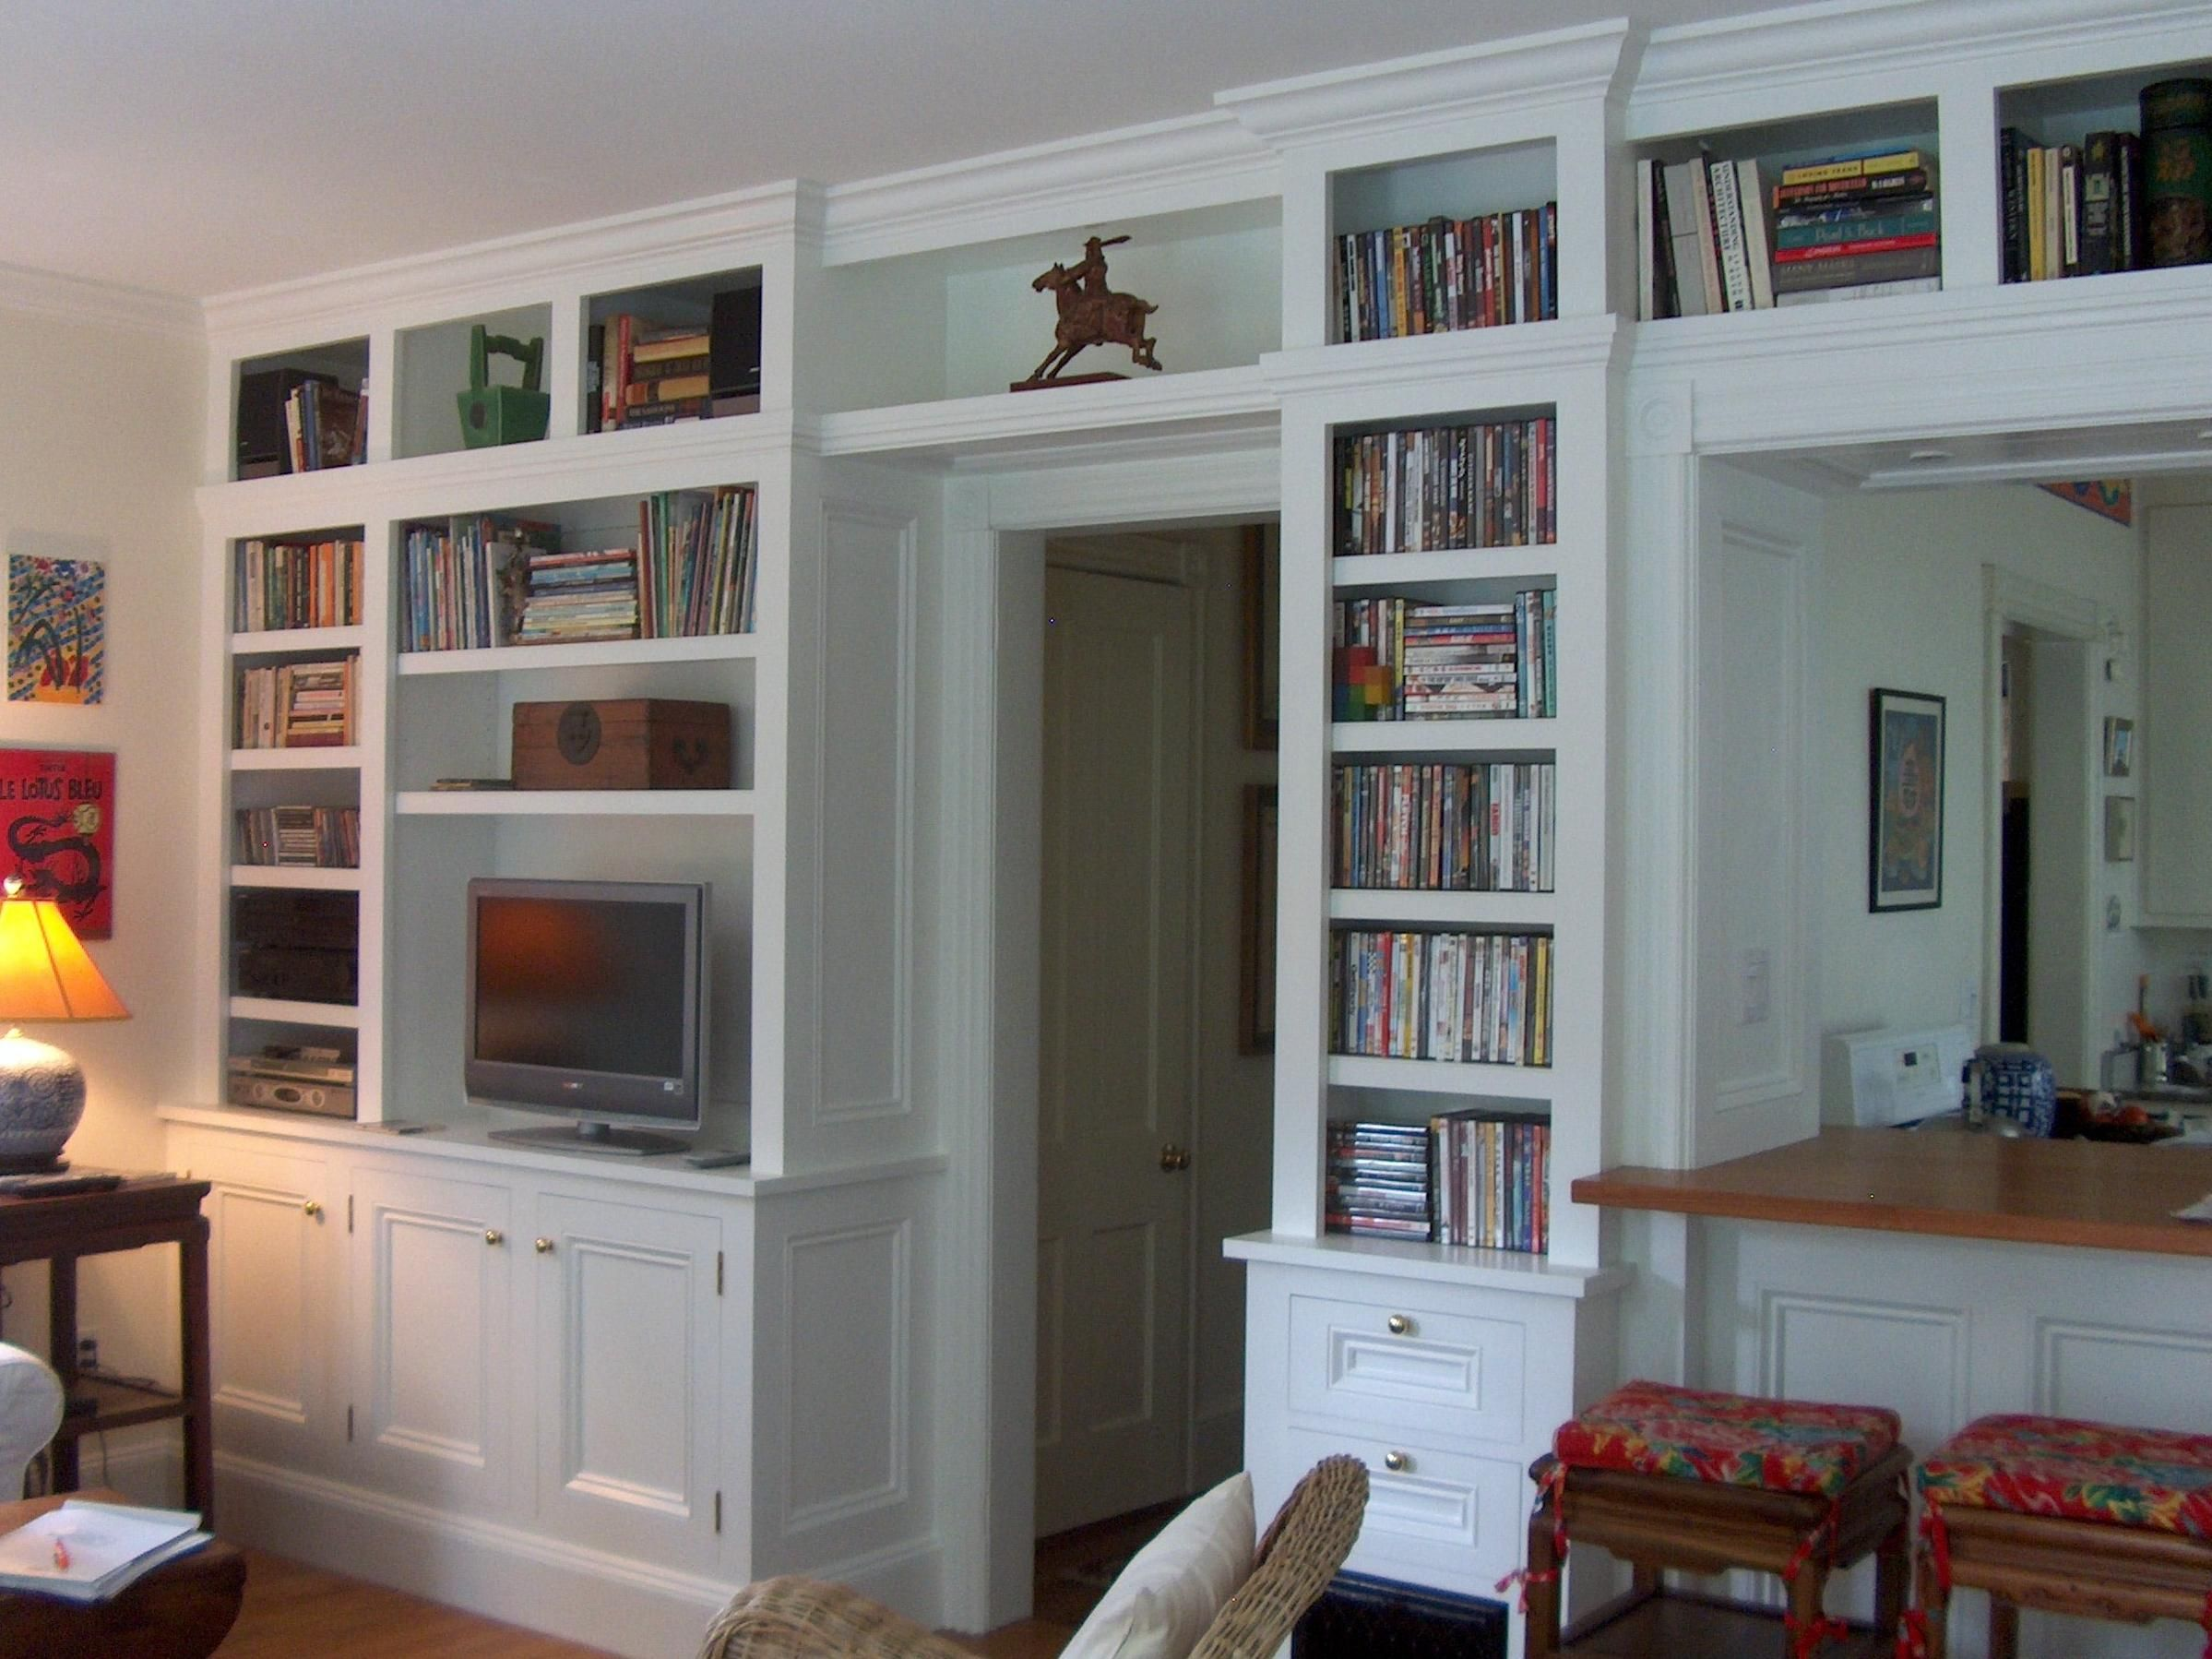 Shelving U0026 Cabinets: Built In Bookcases Ideas With The Chair Turn Around To  Turn White, Built In Bookshelves, Custom Built Ins